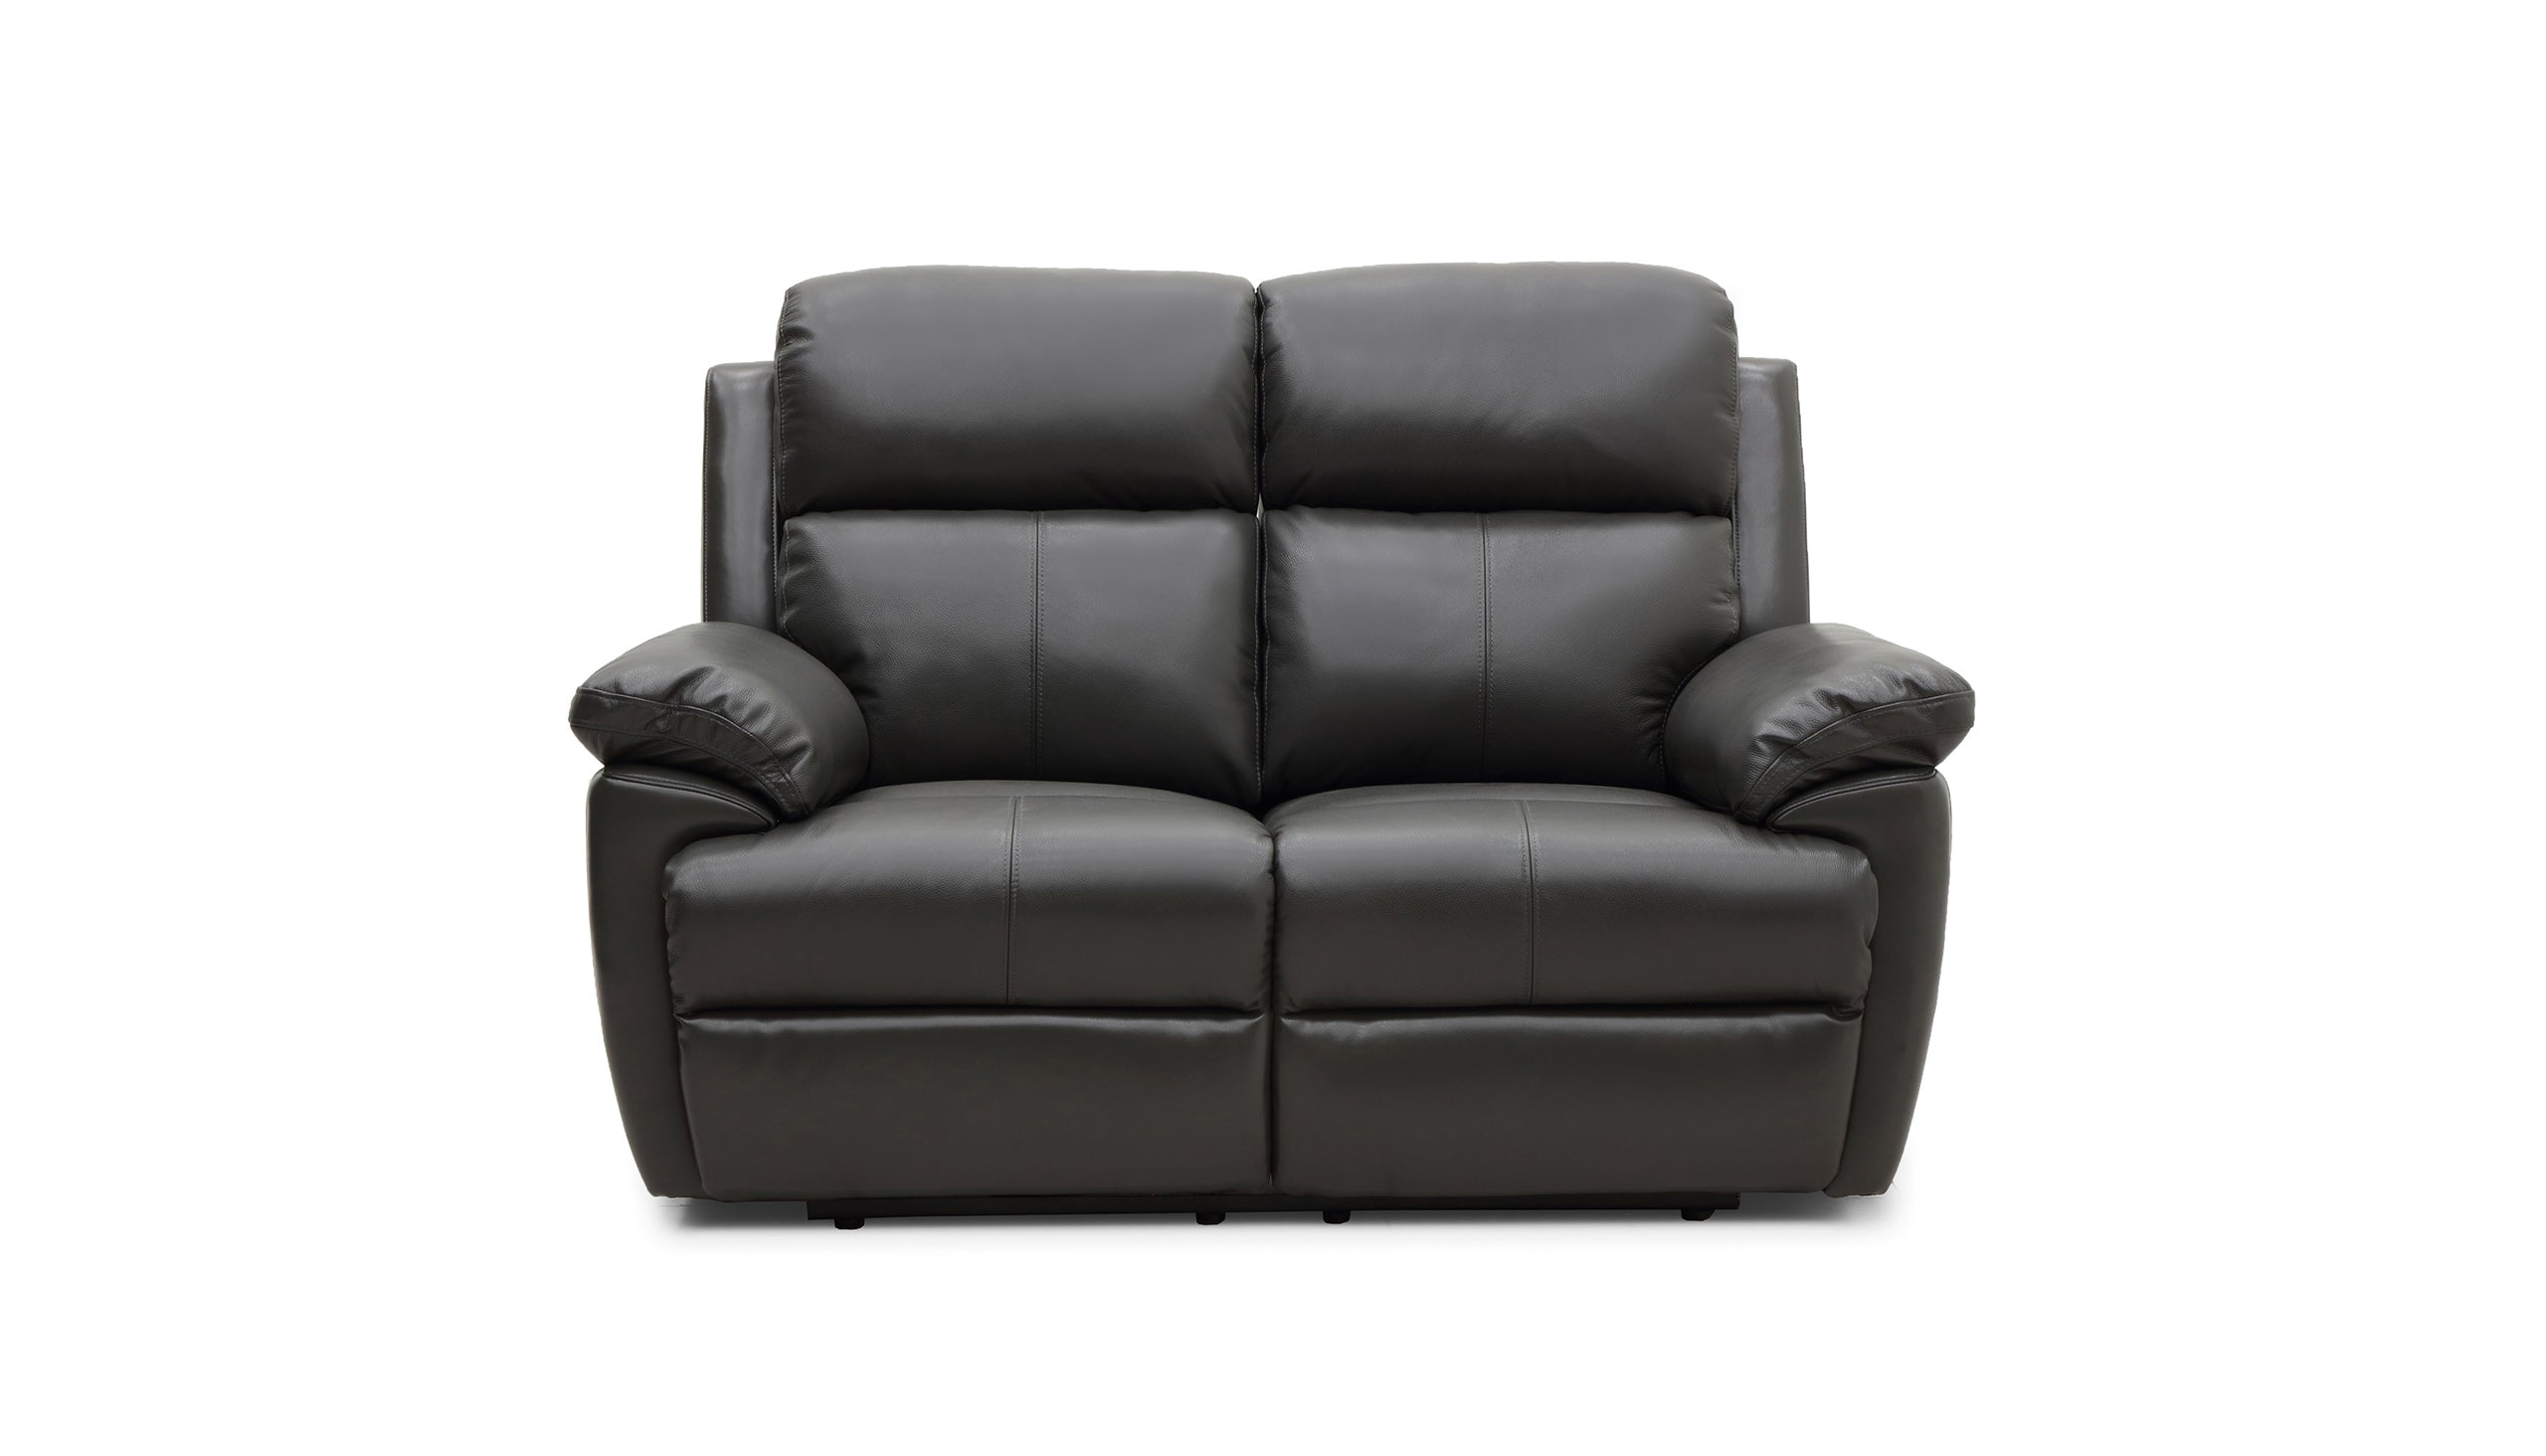 Blair 2 Seater Power Recliner Sofa in Leather